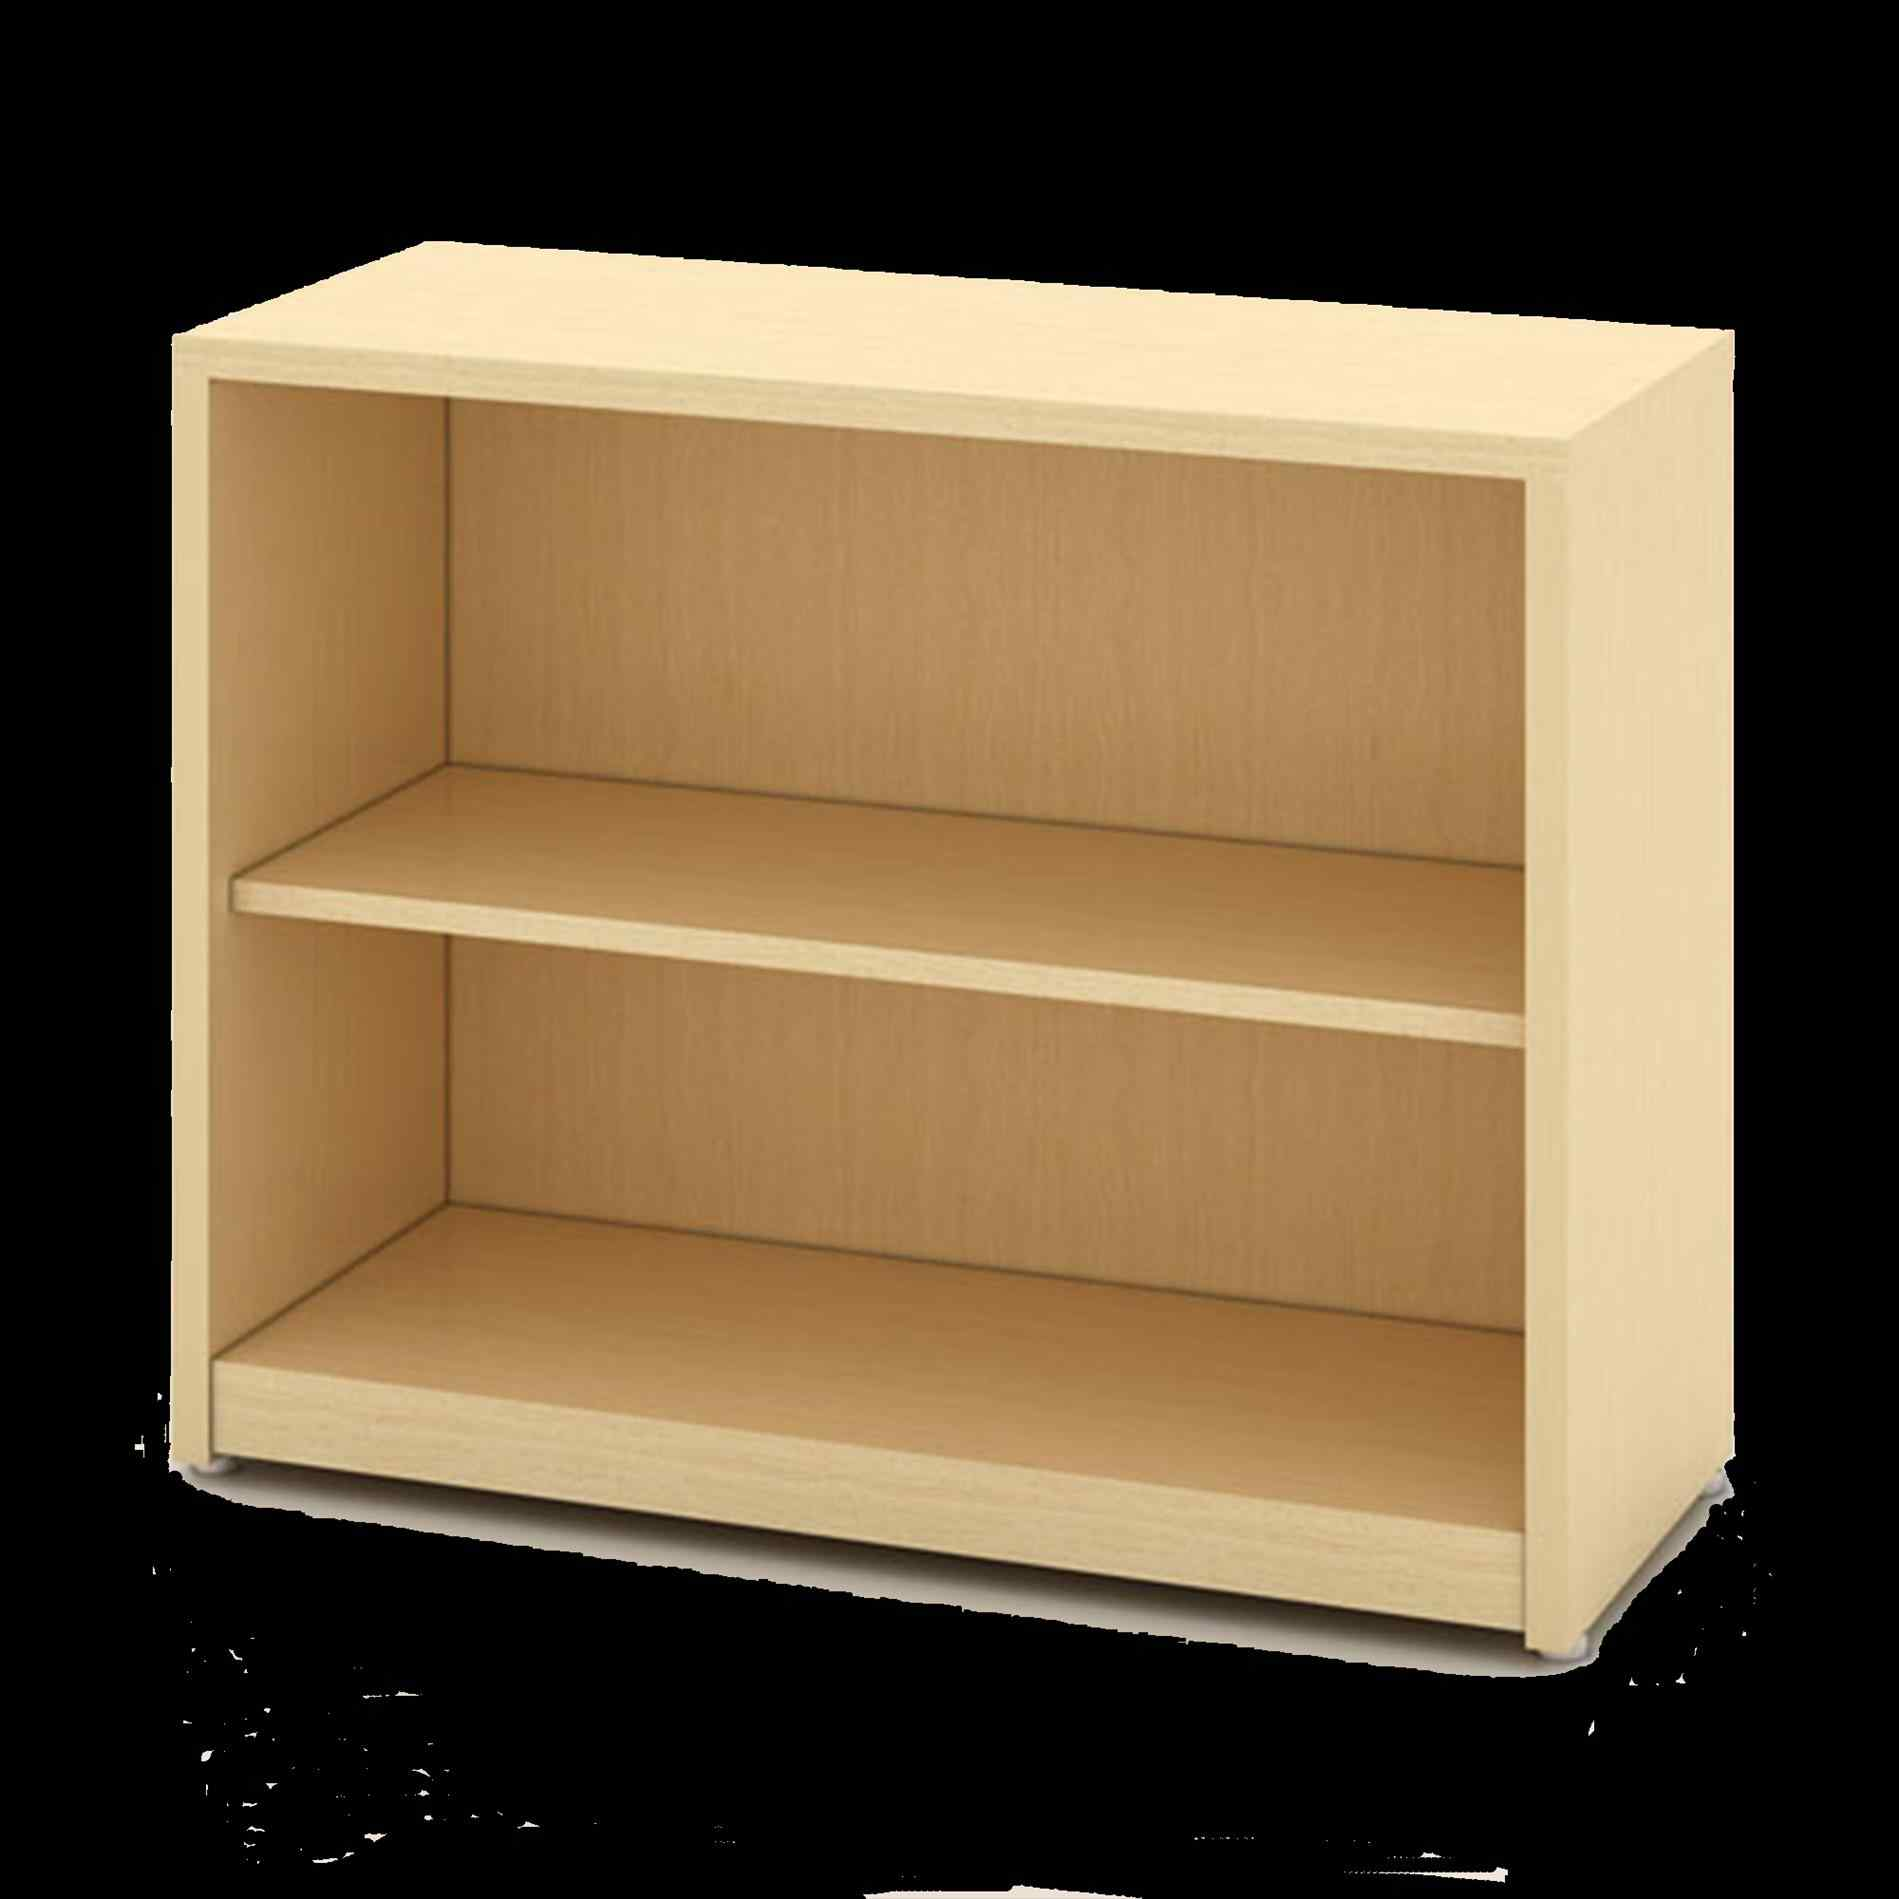 1899x1899 Bookshelf Clipart Pin Drawn Bookcase Old Hdq For Drawing For Kids